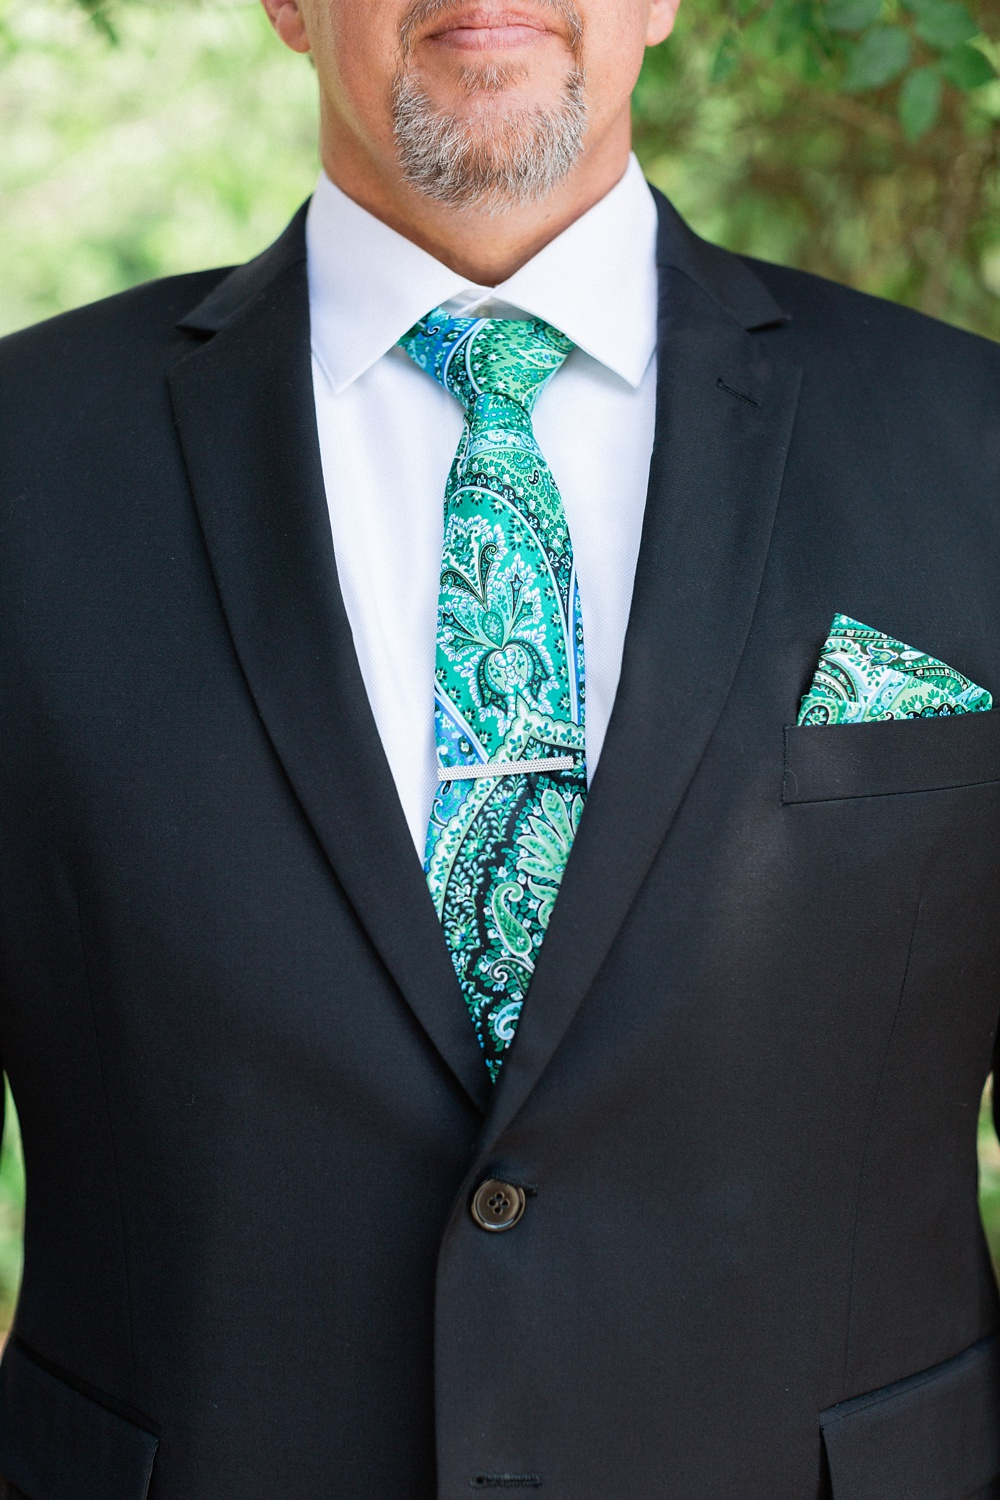 detail shot of a groom's blue paisley tie and suit